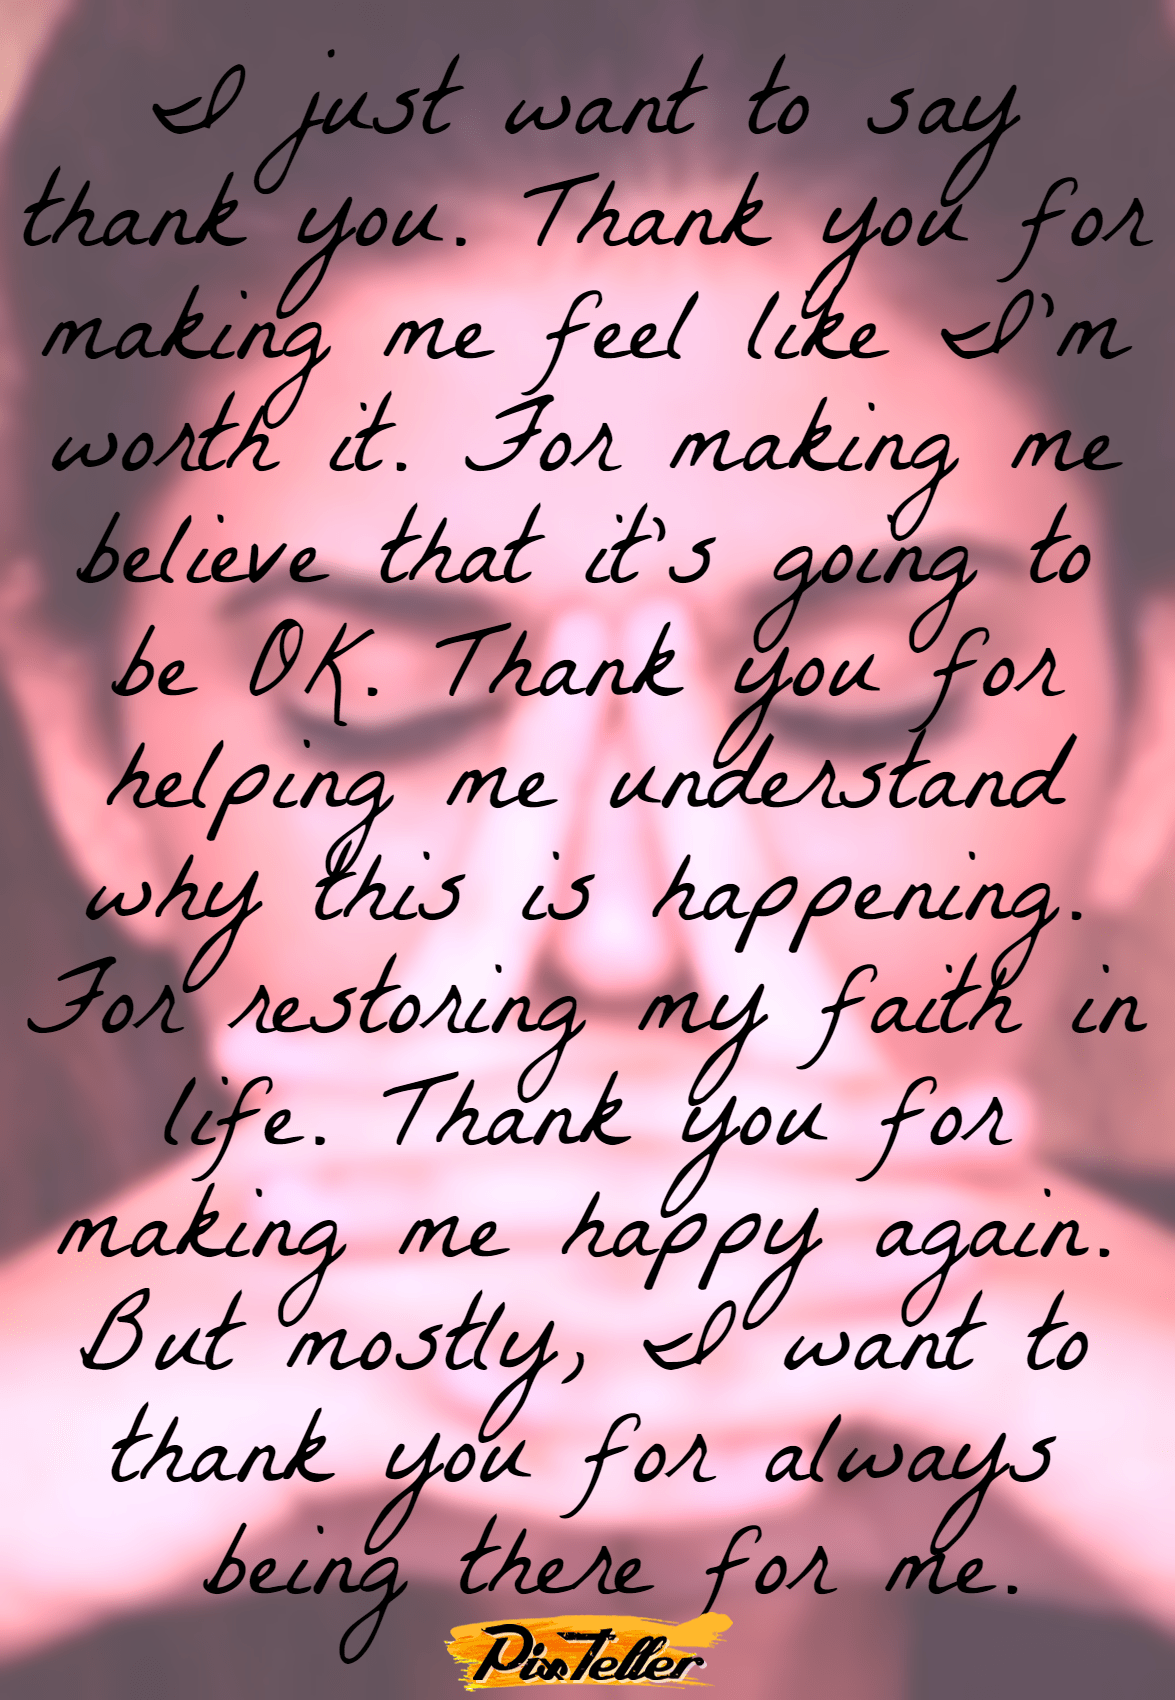 Pink,                Text,                Handwriting,                Font,                Love,                Petal,                Heart,                Valentine's,                Day,                Calligraphy,                Writing,                Thankyou,                Worthit,                 Free Image